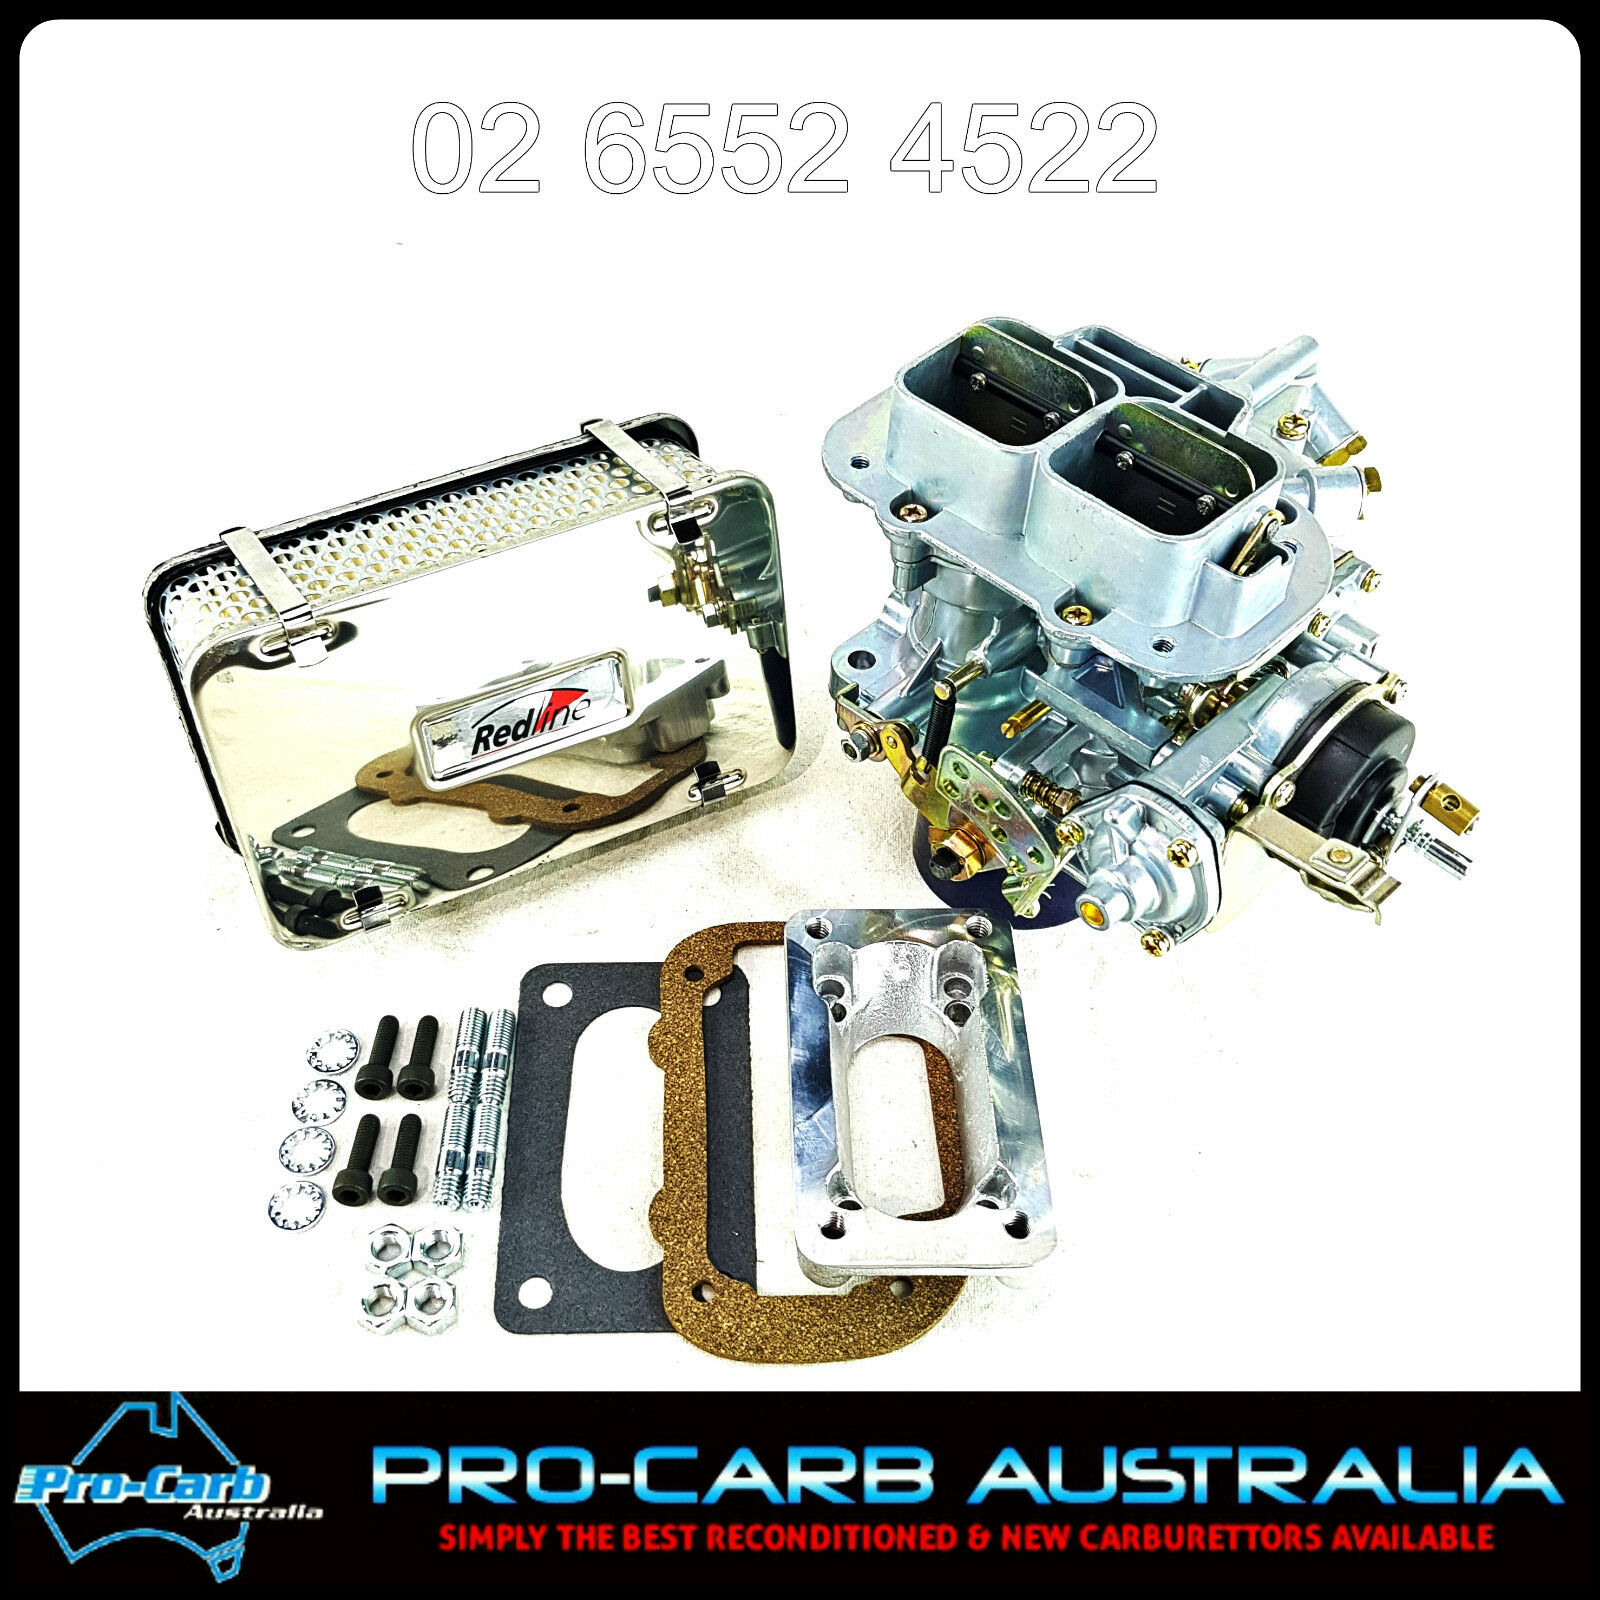 Toyota Hilux 2y 3y 4y Dgv M C Fajs Carby Performance Upgrade Kit How Timing Engine 1 Of 6only 0 Available